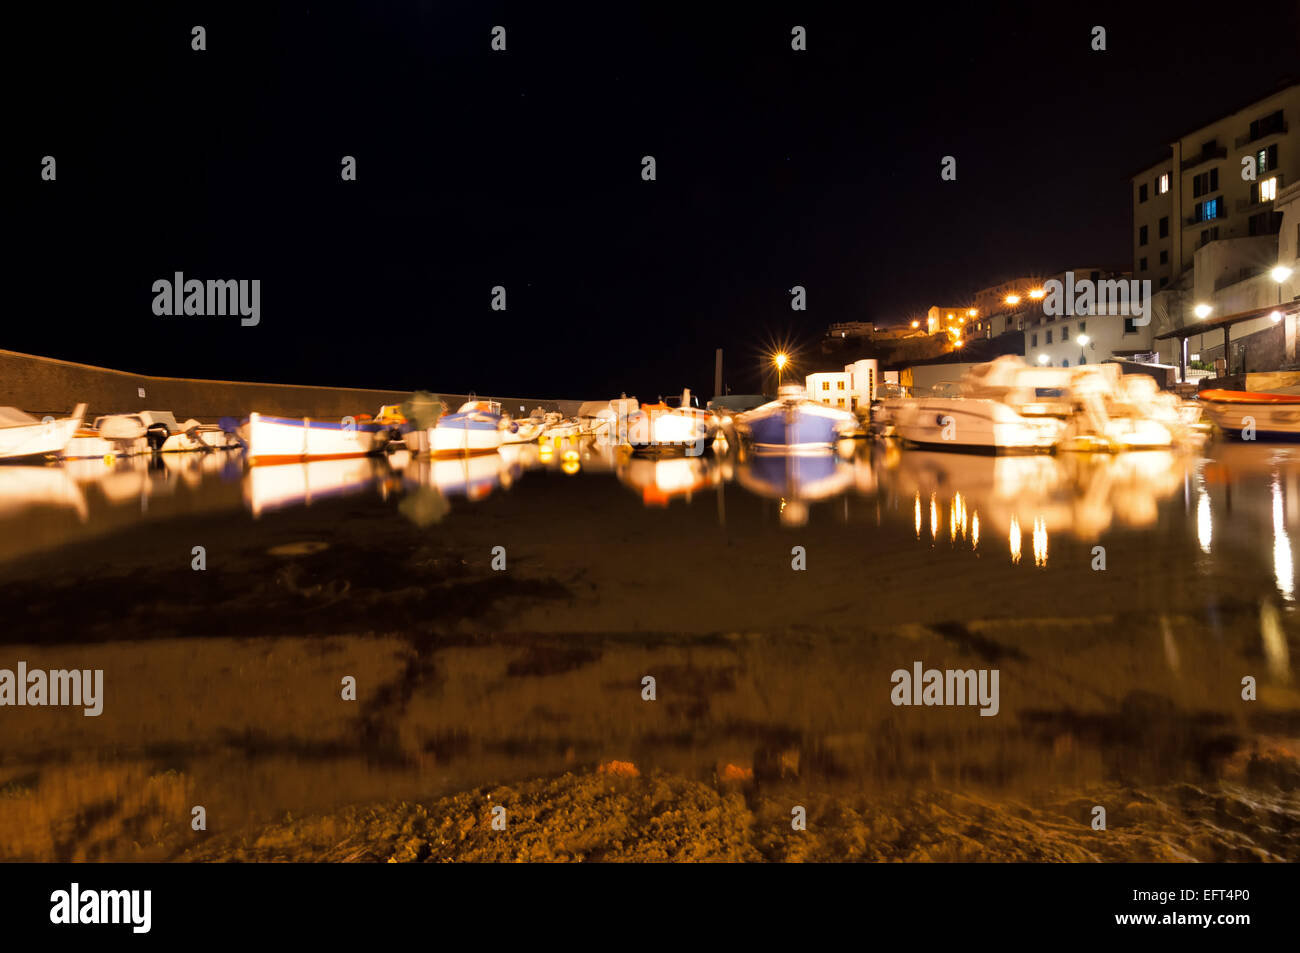 Piombino, Italy - April 17, 2013: night view of ancient downtown port in Piombino, Italy. - Stock Image